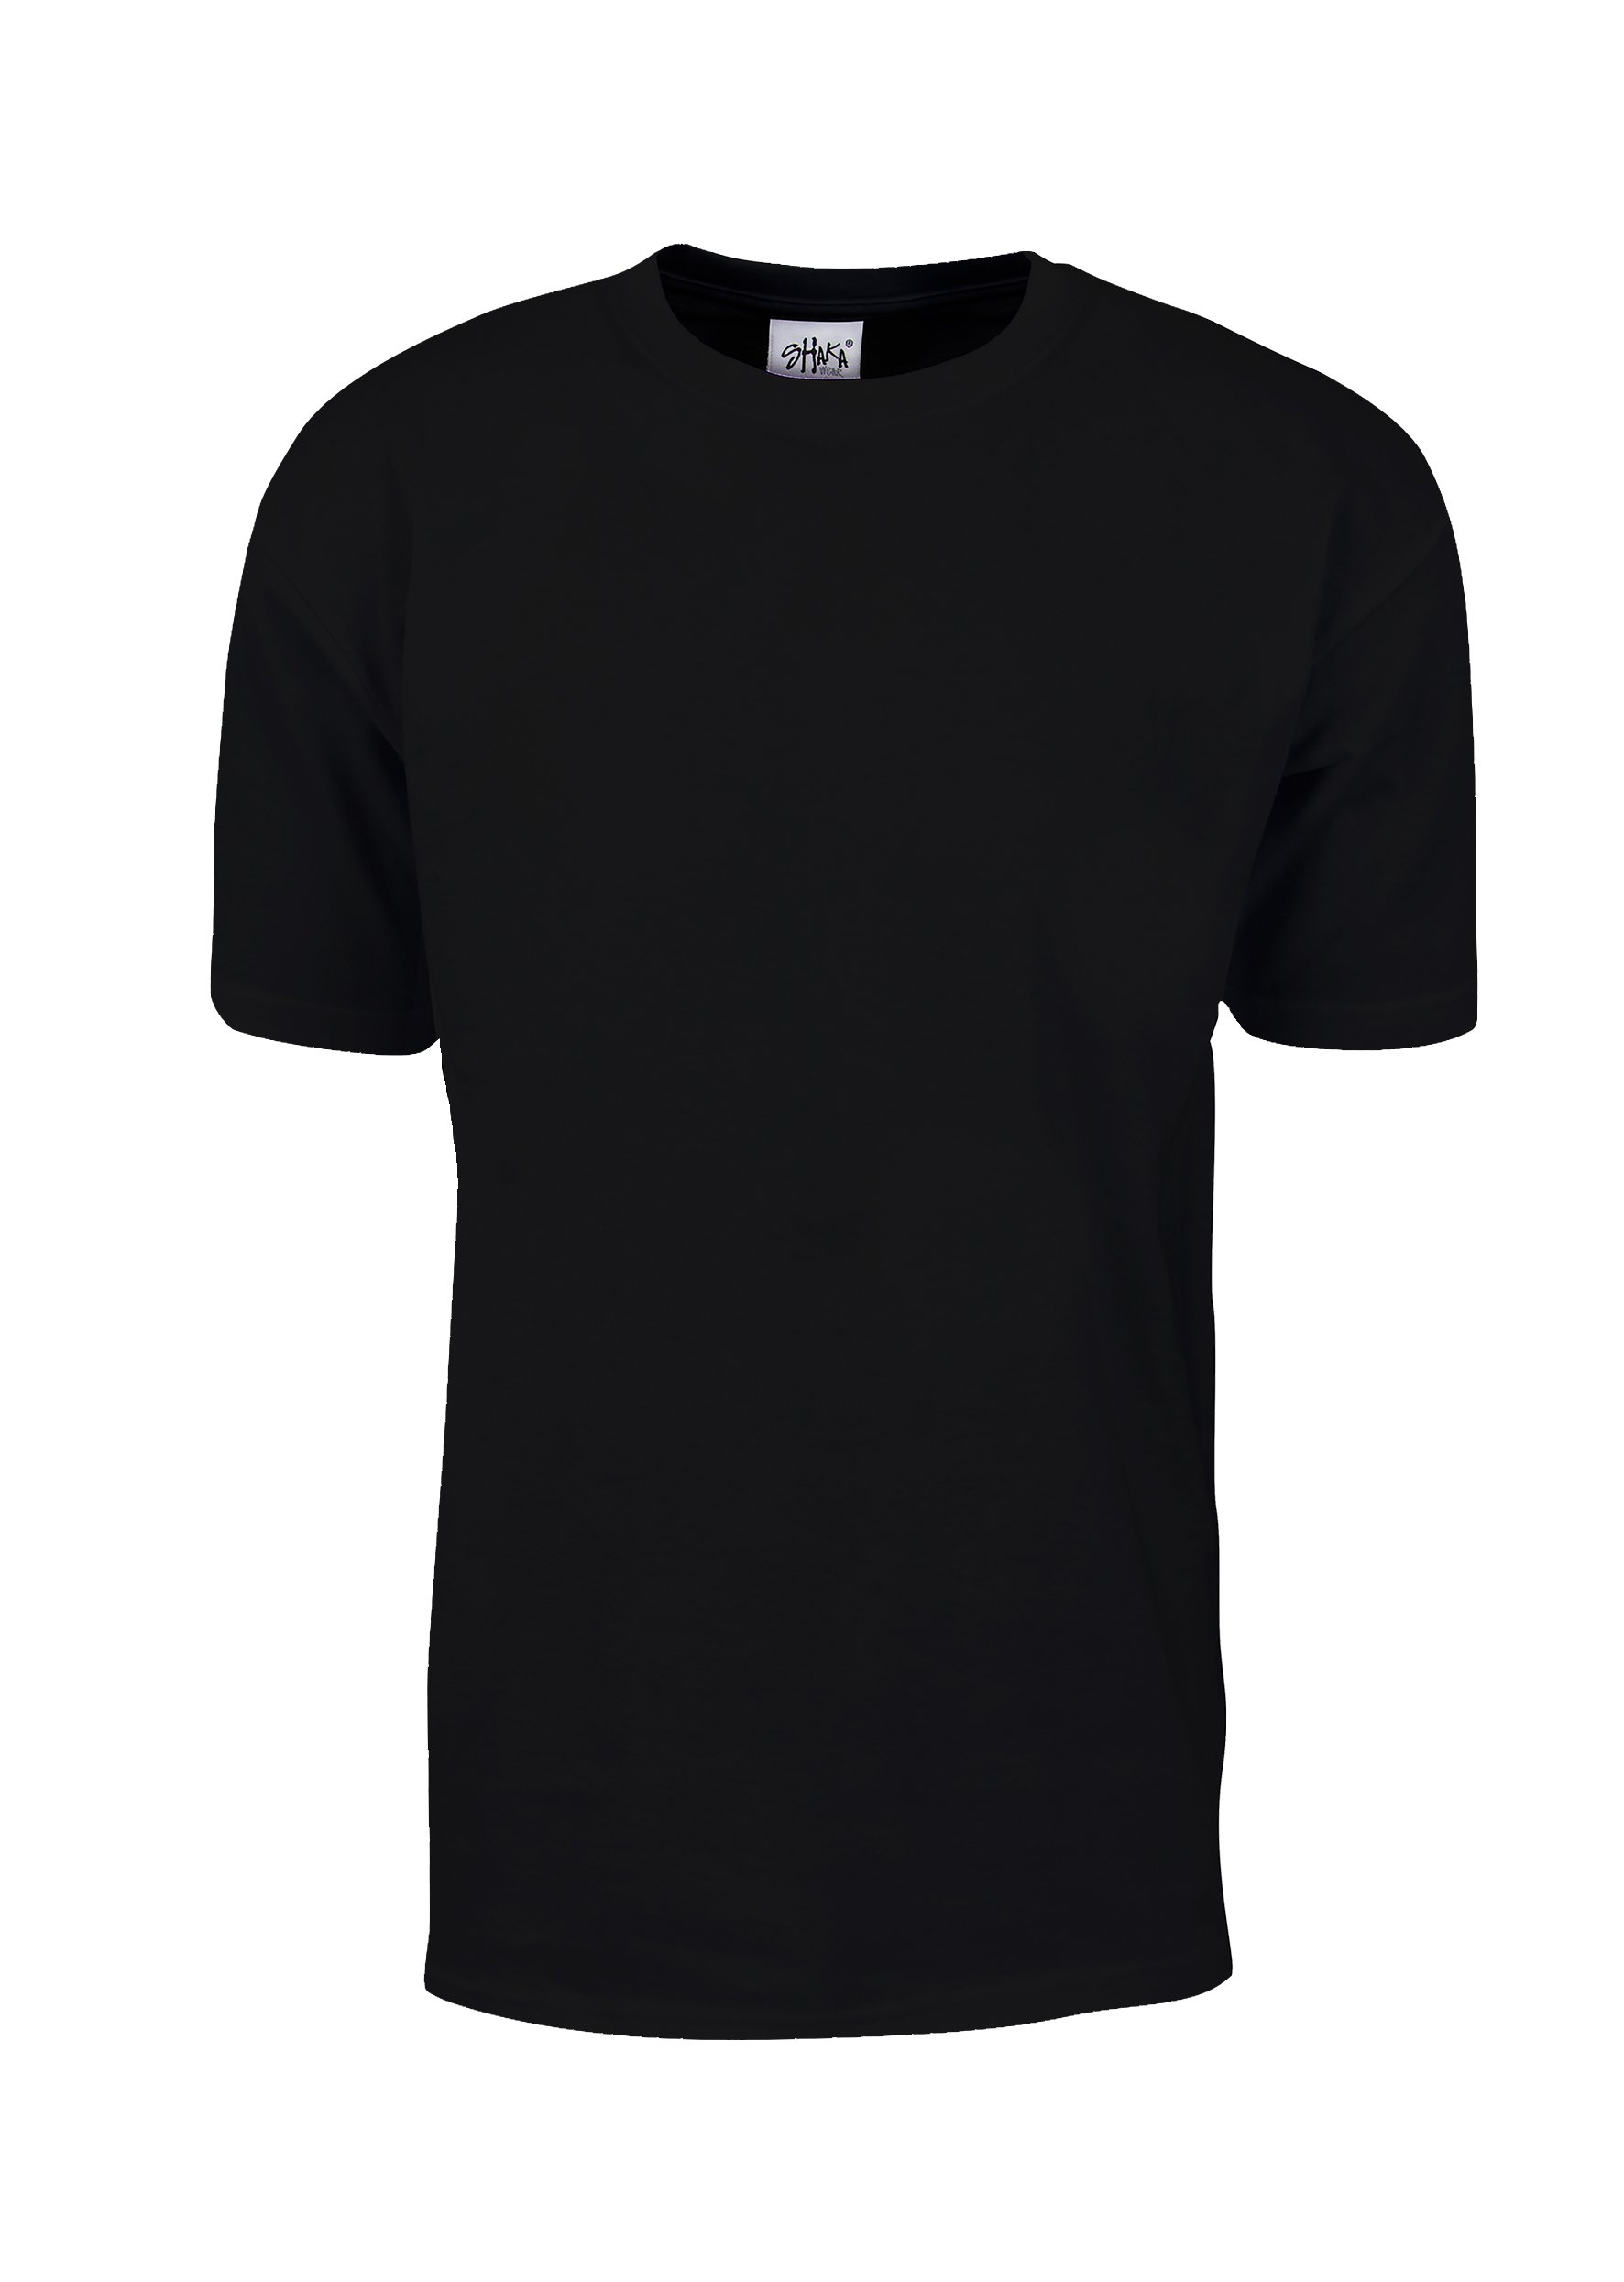 MHS02_XL Max Heavy Weight Cotton Short Sleeve T-Shirt Black 1X